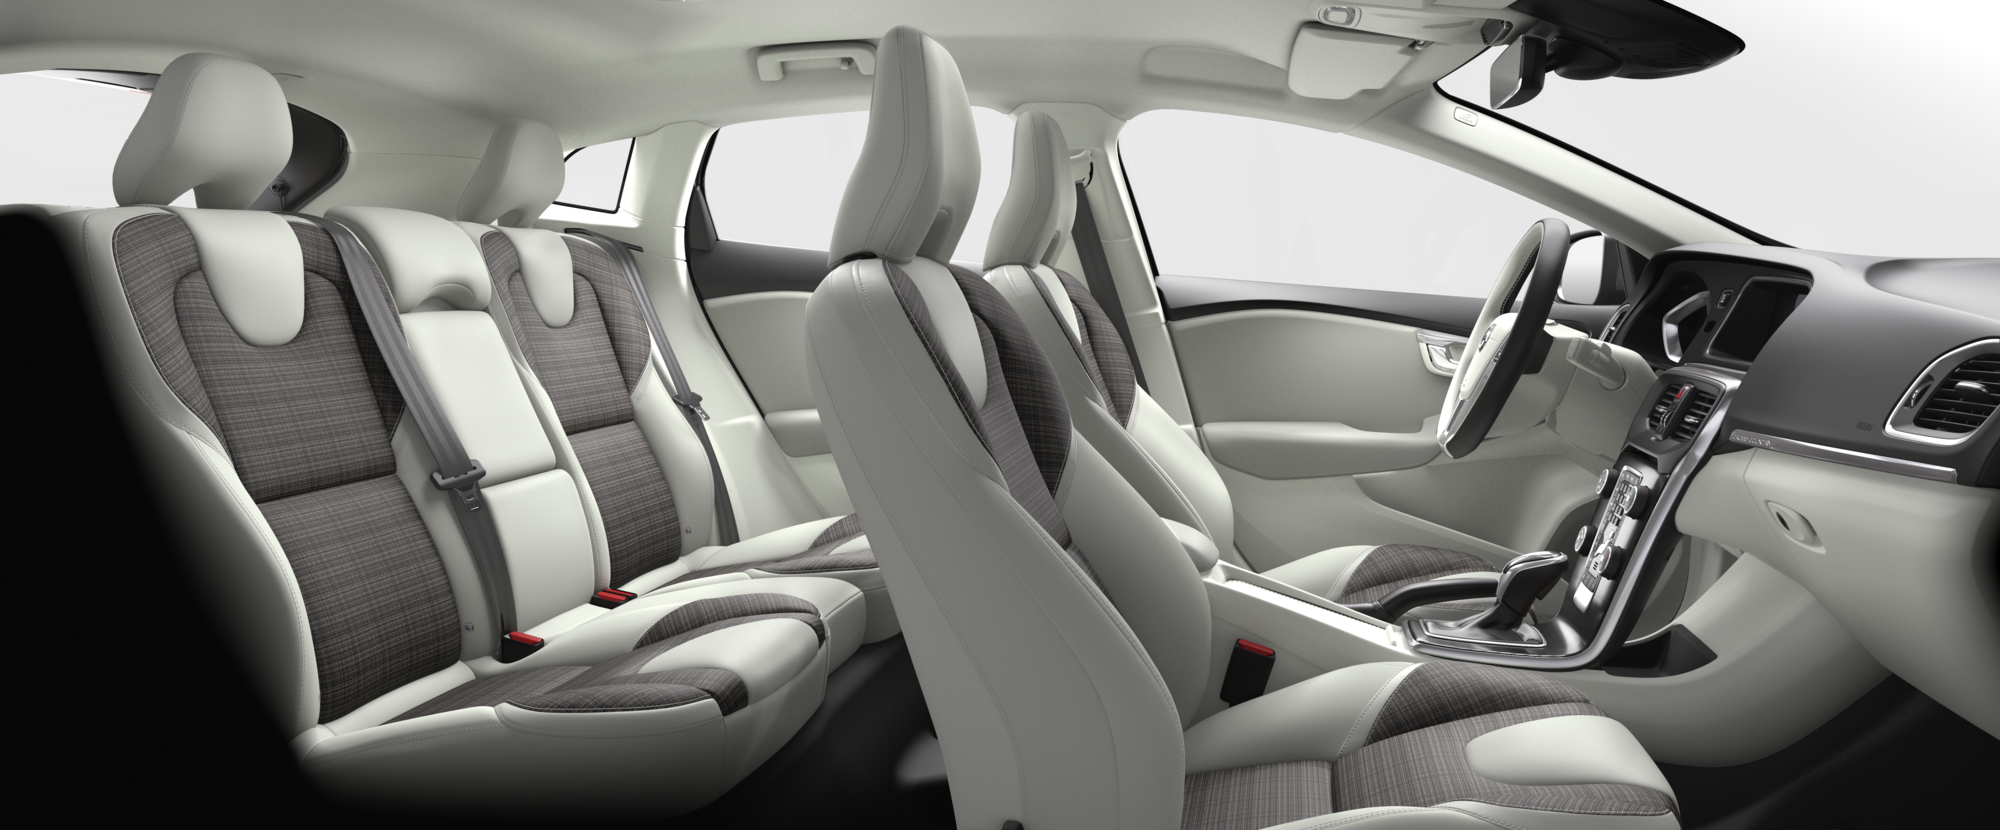 Interior shot of the Volvo V40 Cross Country with City Weave Seats